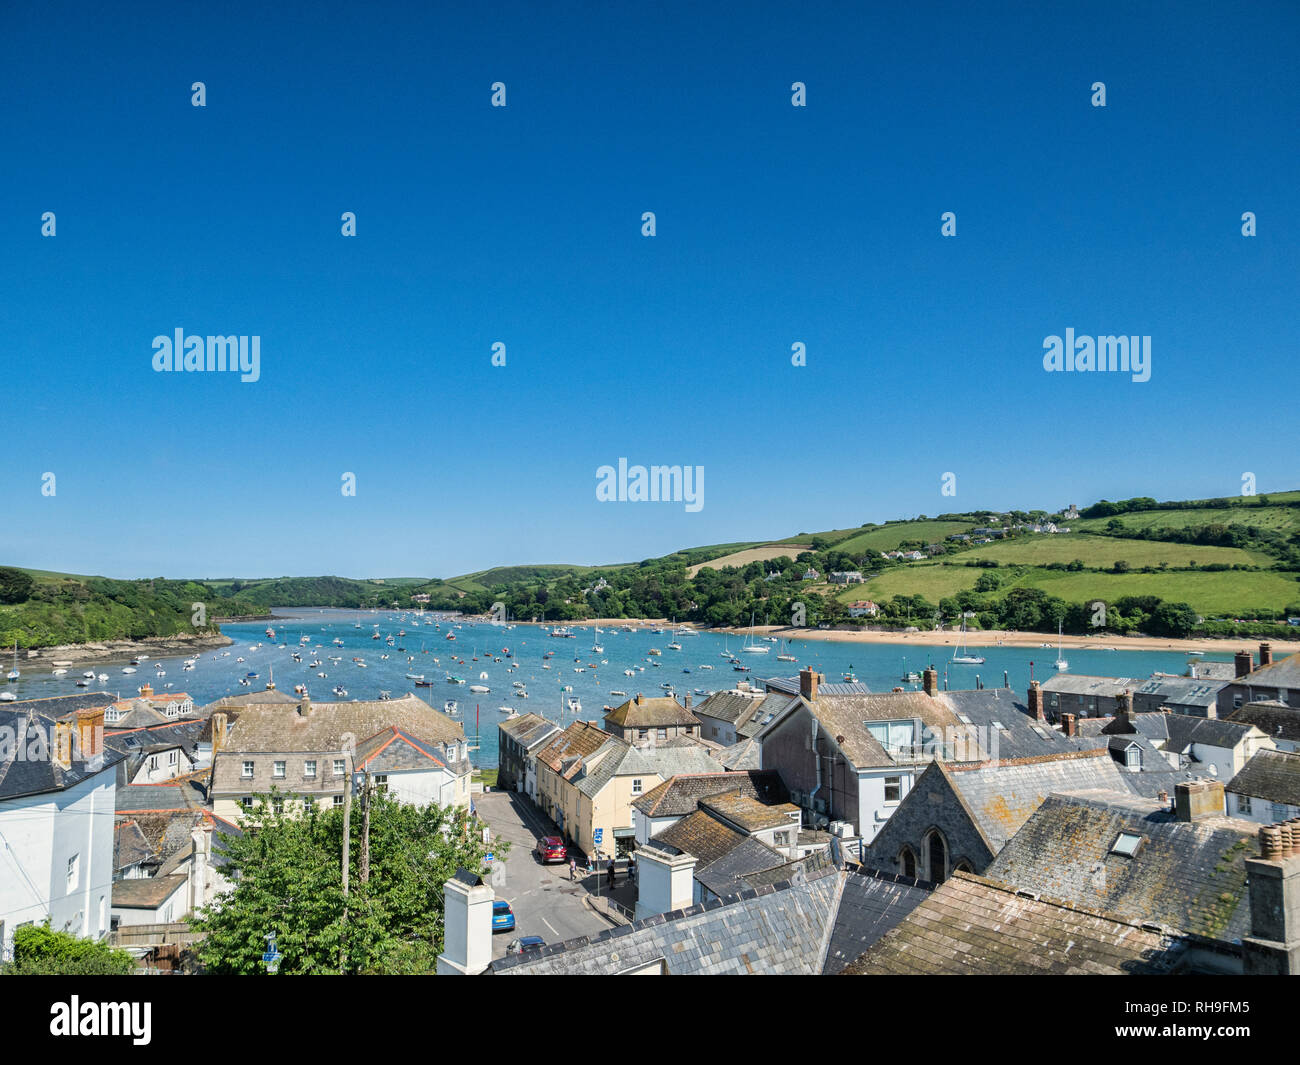 3 June 2016: Salcombe, Devon UK - The Kingsbridge Estuary and roof tops of Salcombe on a warm and sunny spring day with clear blue sky. - Stock Image